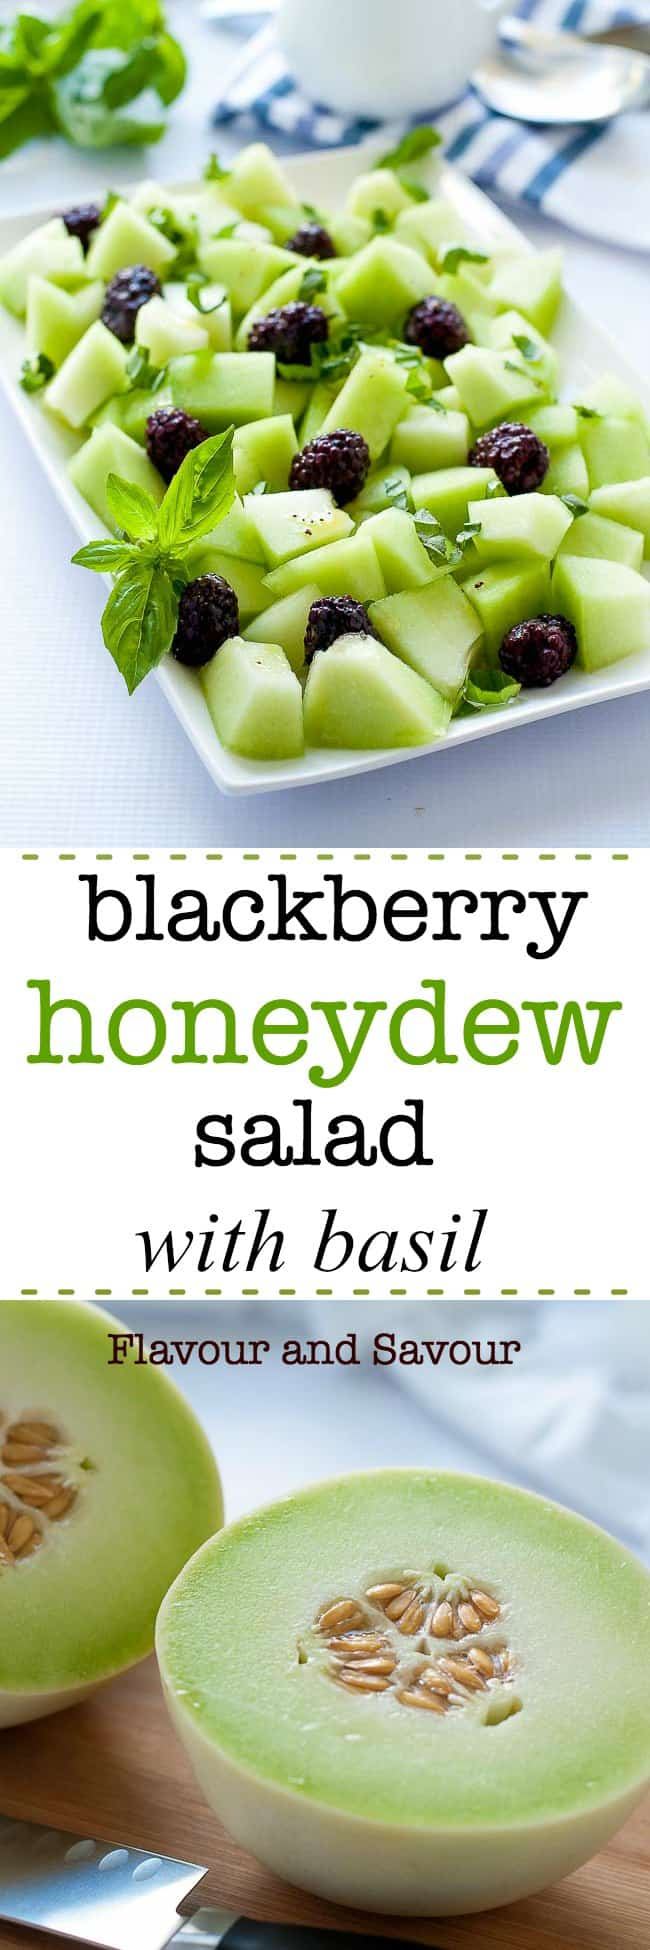 Sweet honeydew, tart blackberries and pungent basil combine to make this fresh Blackberry Honeydew Salad with Basil as appetizing to look at as it is to eat.